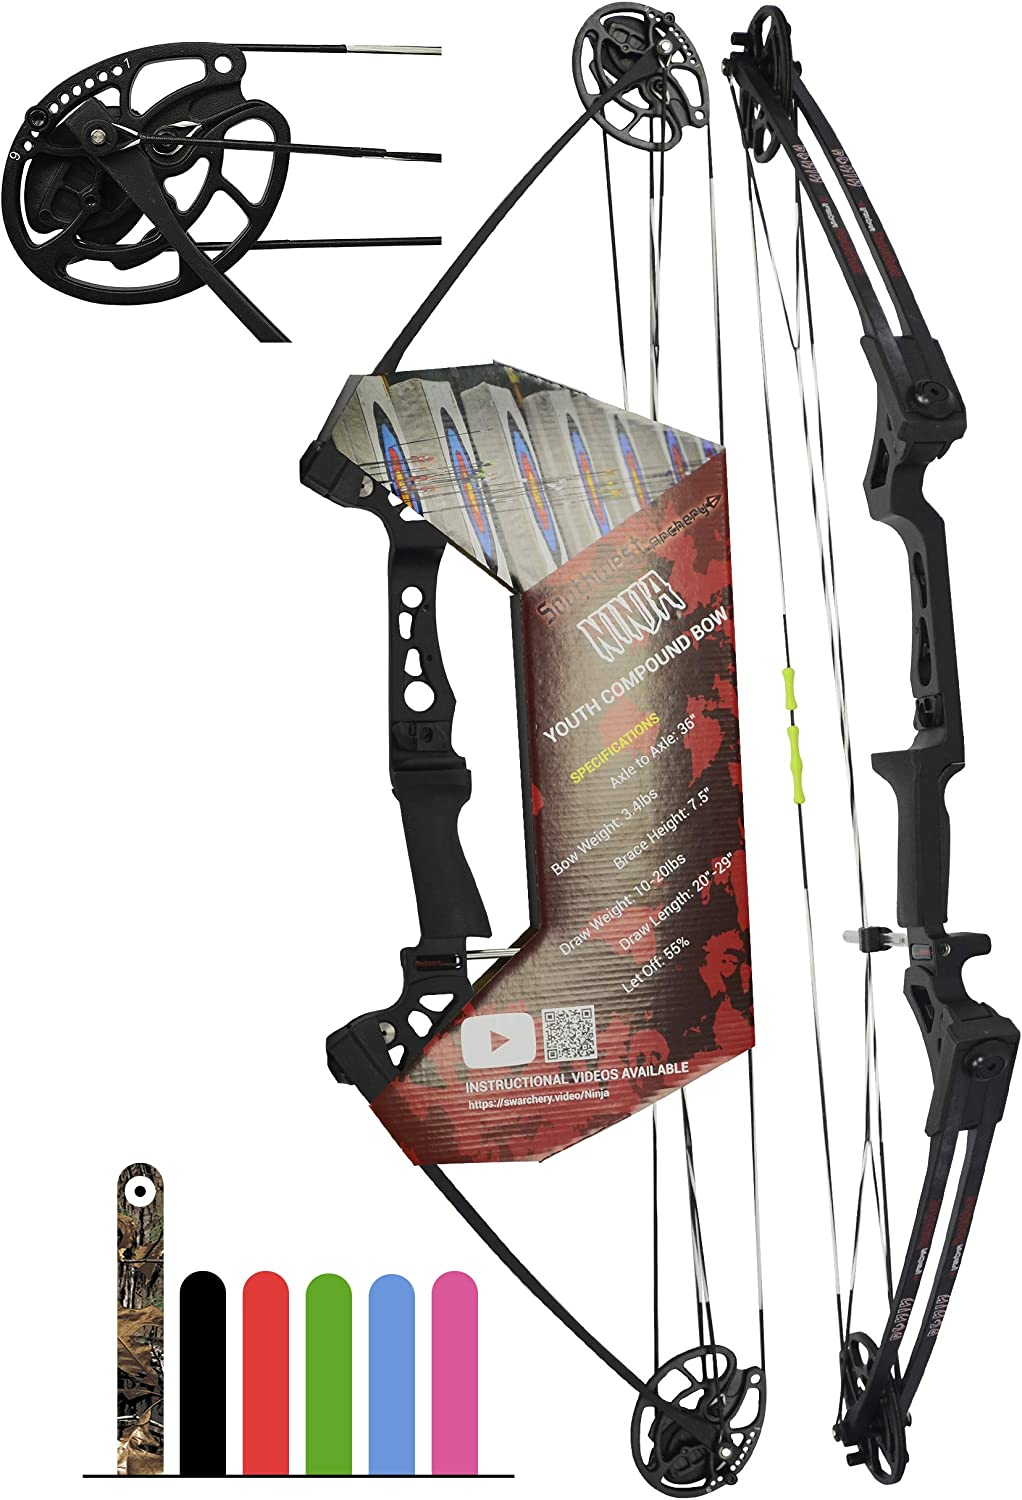 """Southwest Archery Ninja Kids Youth Compound Bow Kit - Fully Adjustable 20-29"""" Draw 10-20LB Pull - 55% Let Off - Pre-Installed Arrow Rest - Finger ..."""